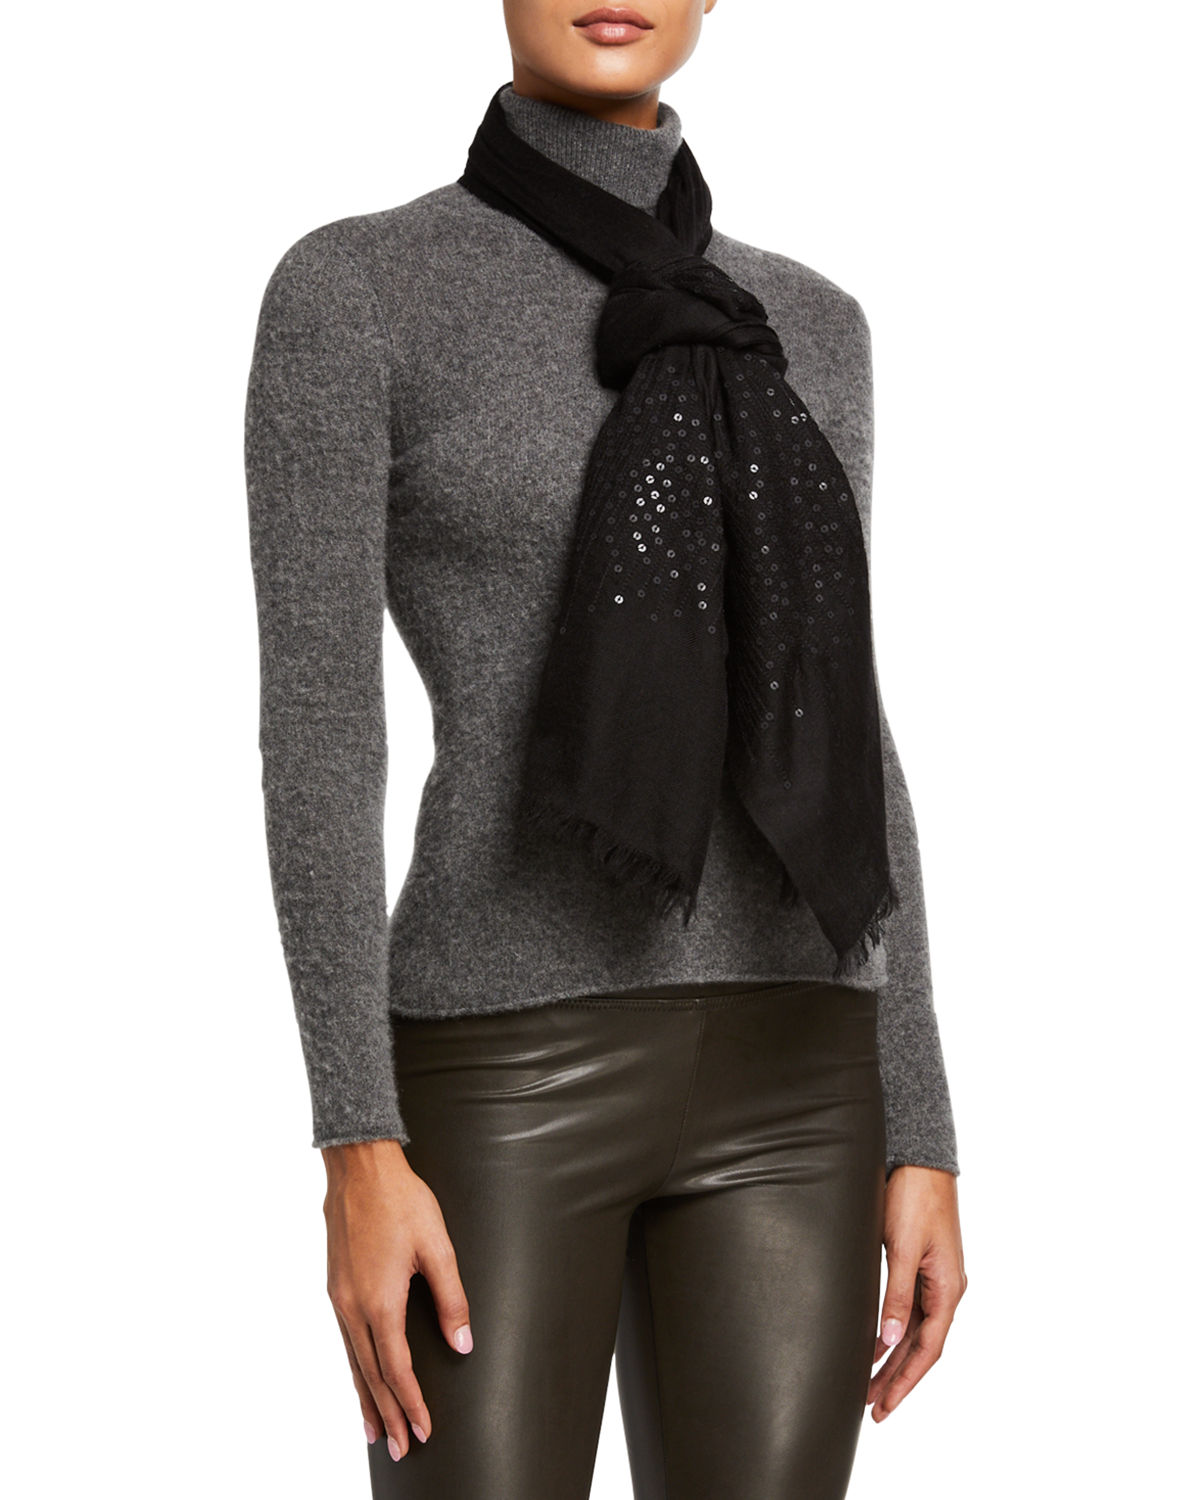 Sofia Cashmere Accessories LIGHTWEIGHT SEQUINS CASHMERE WRAP